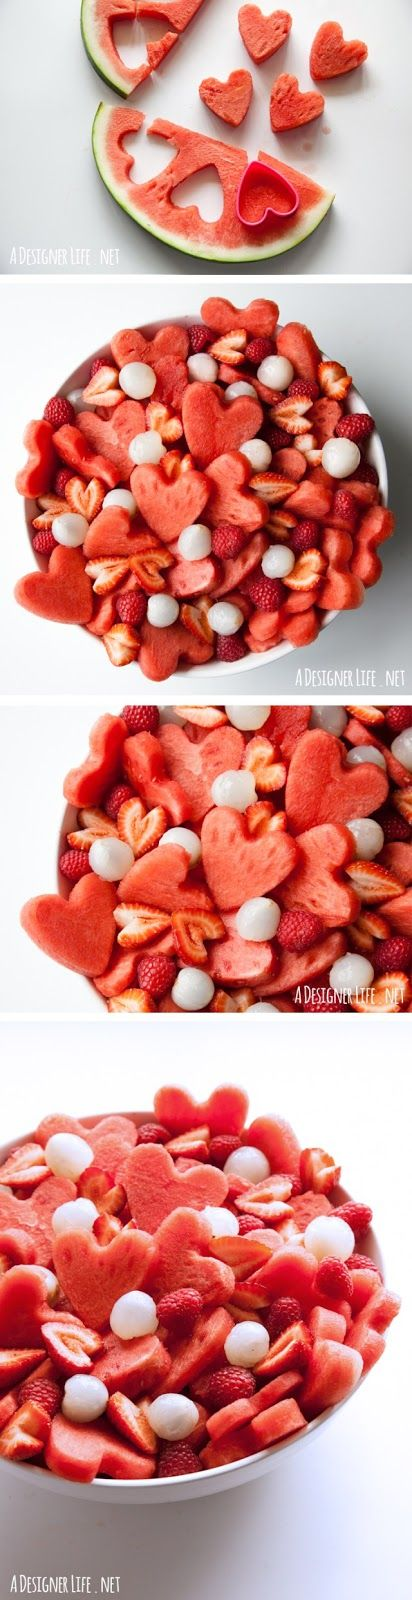 Valentine Cookie Cutter Fruit Salad | Wit & Whistle - Easy Valentine's Day Dessert Recipes - Pink and Red Party Treats #valentinesdaydesserts #easyvalentinesdaydesserts #valentinesdaytreats #pinkandred #pinkdesserts #reddesserts #valentinesdayparty #valentinesday #heartshapedtreats #hearts #love